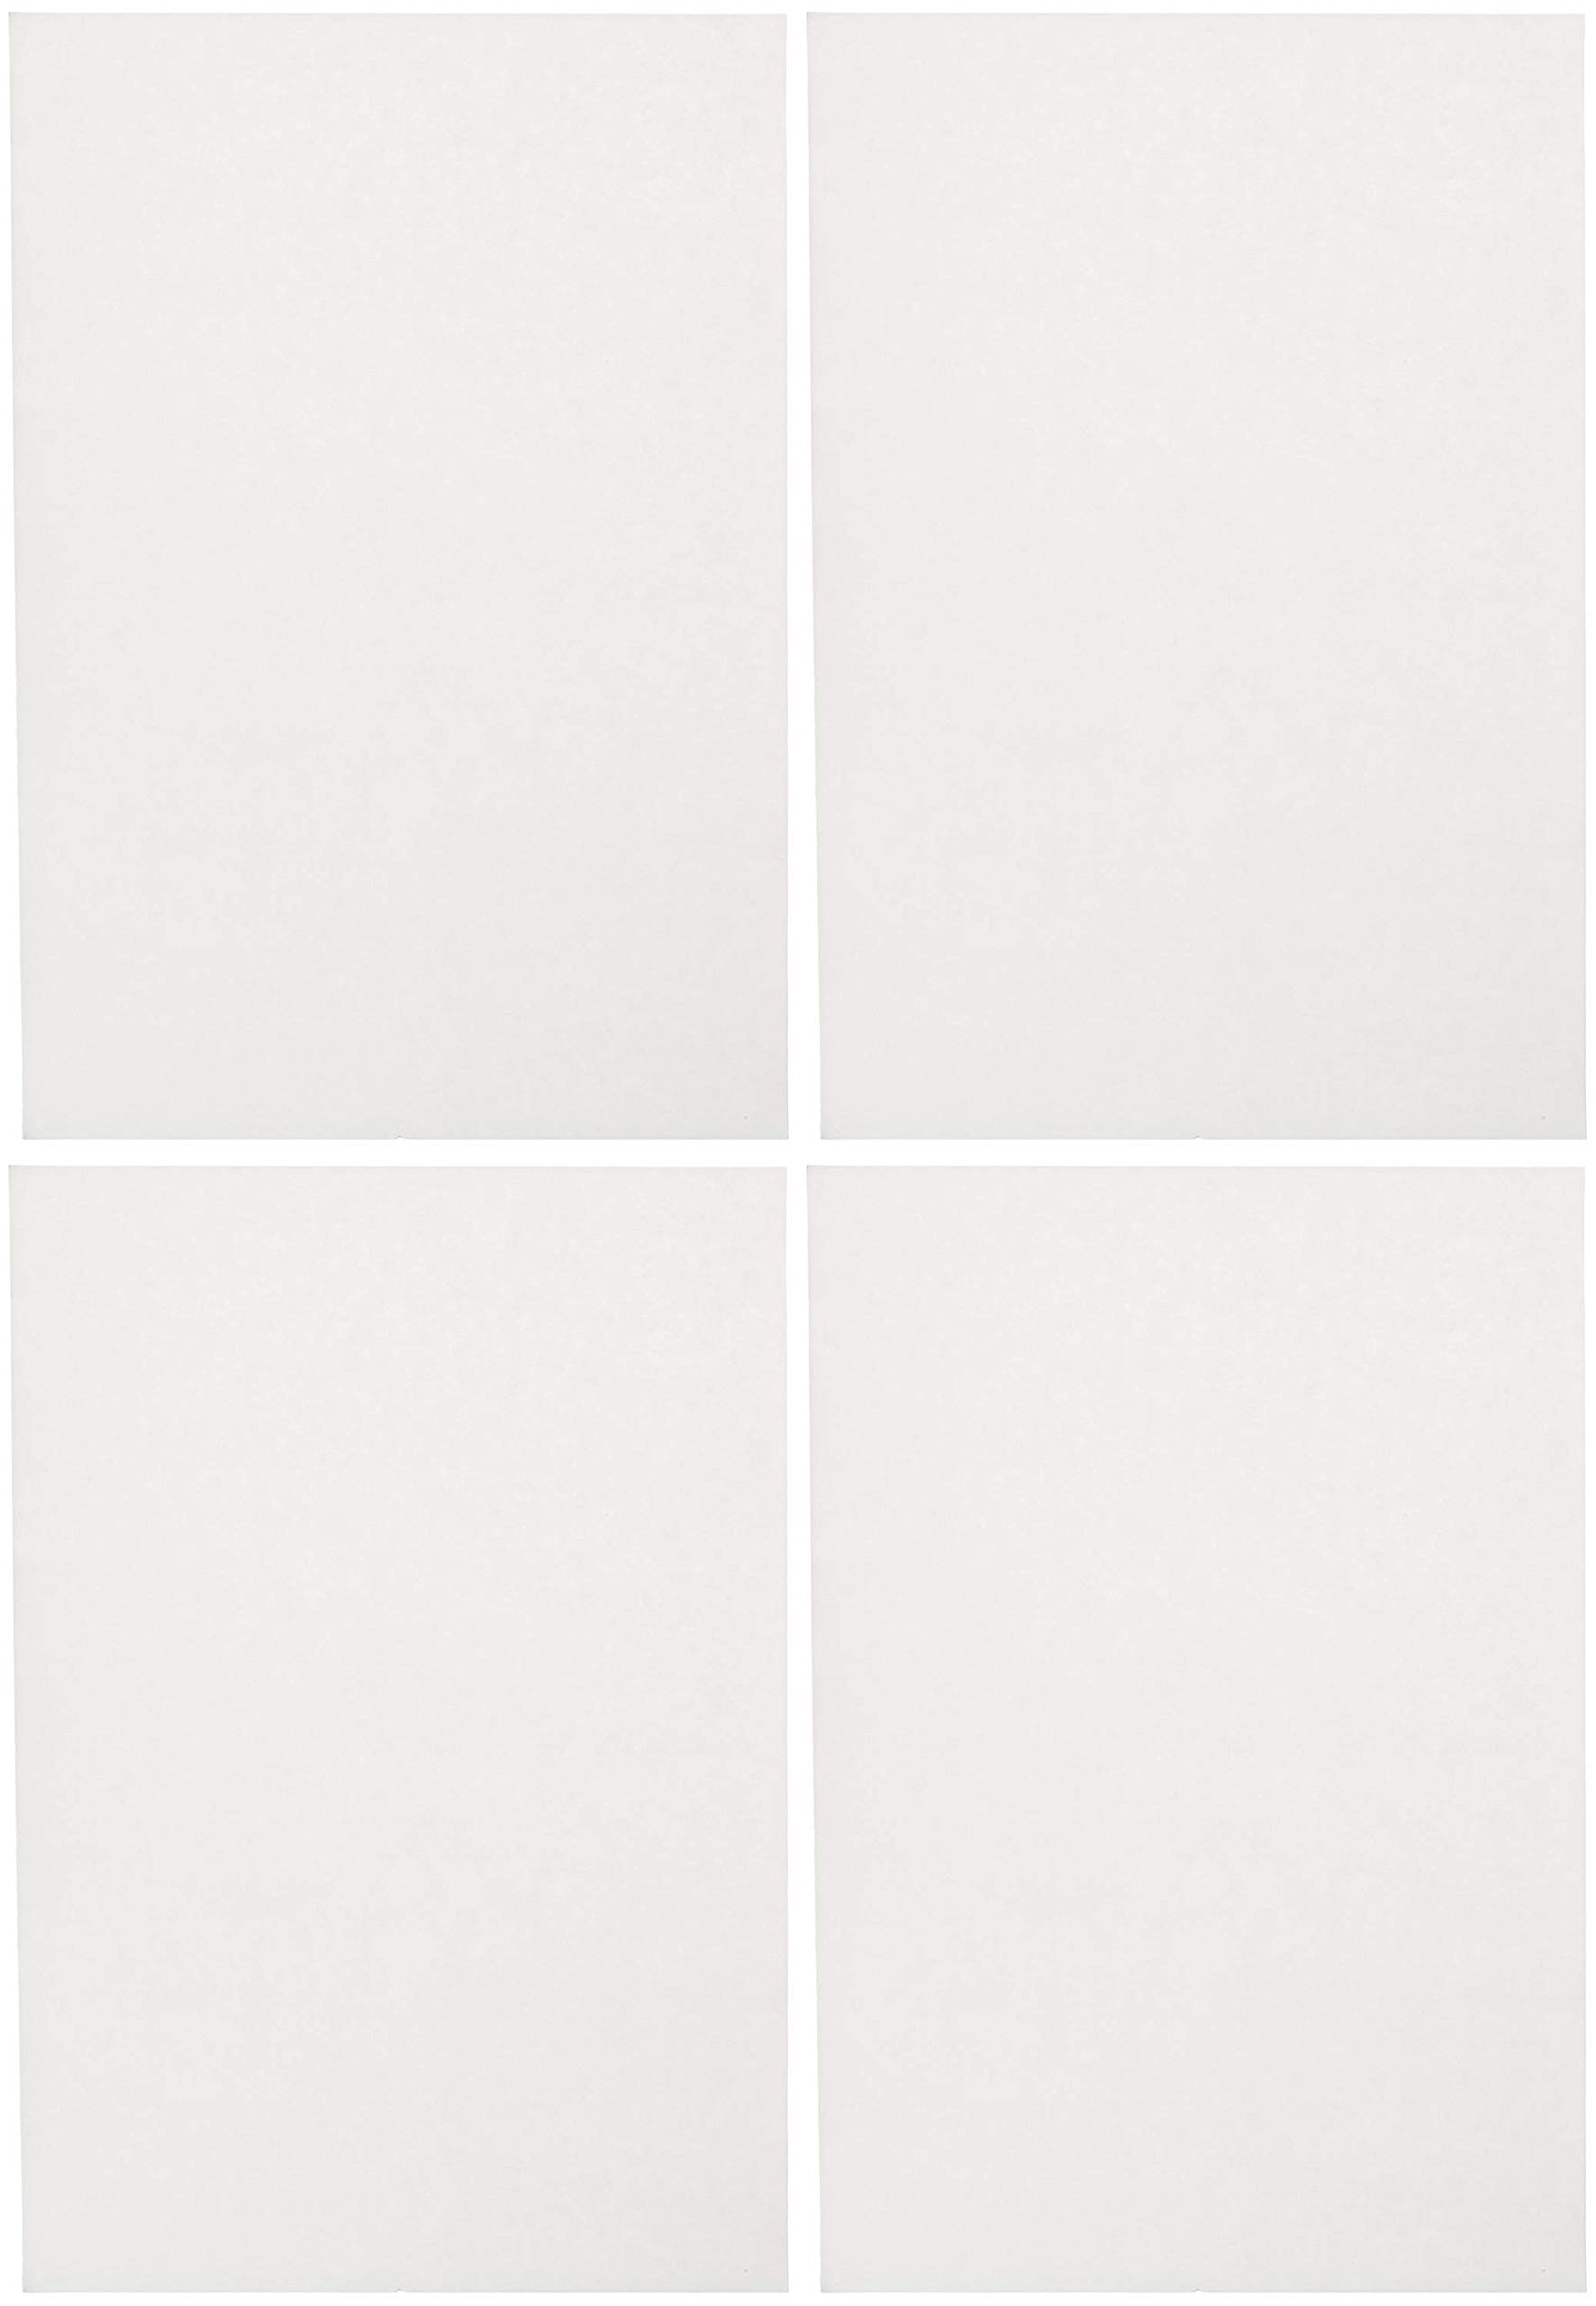 Sax Sulphite Drawing Paper, 70 lb, 12 x 18 Inches, Extra-White, Pack of 500 (Вundlе оf Fоur)